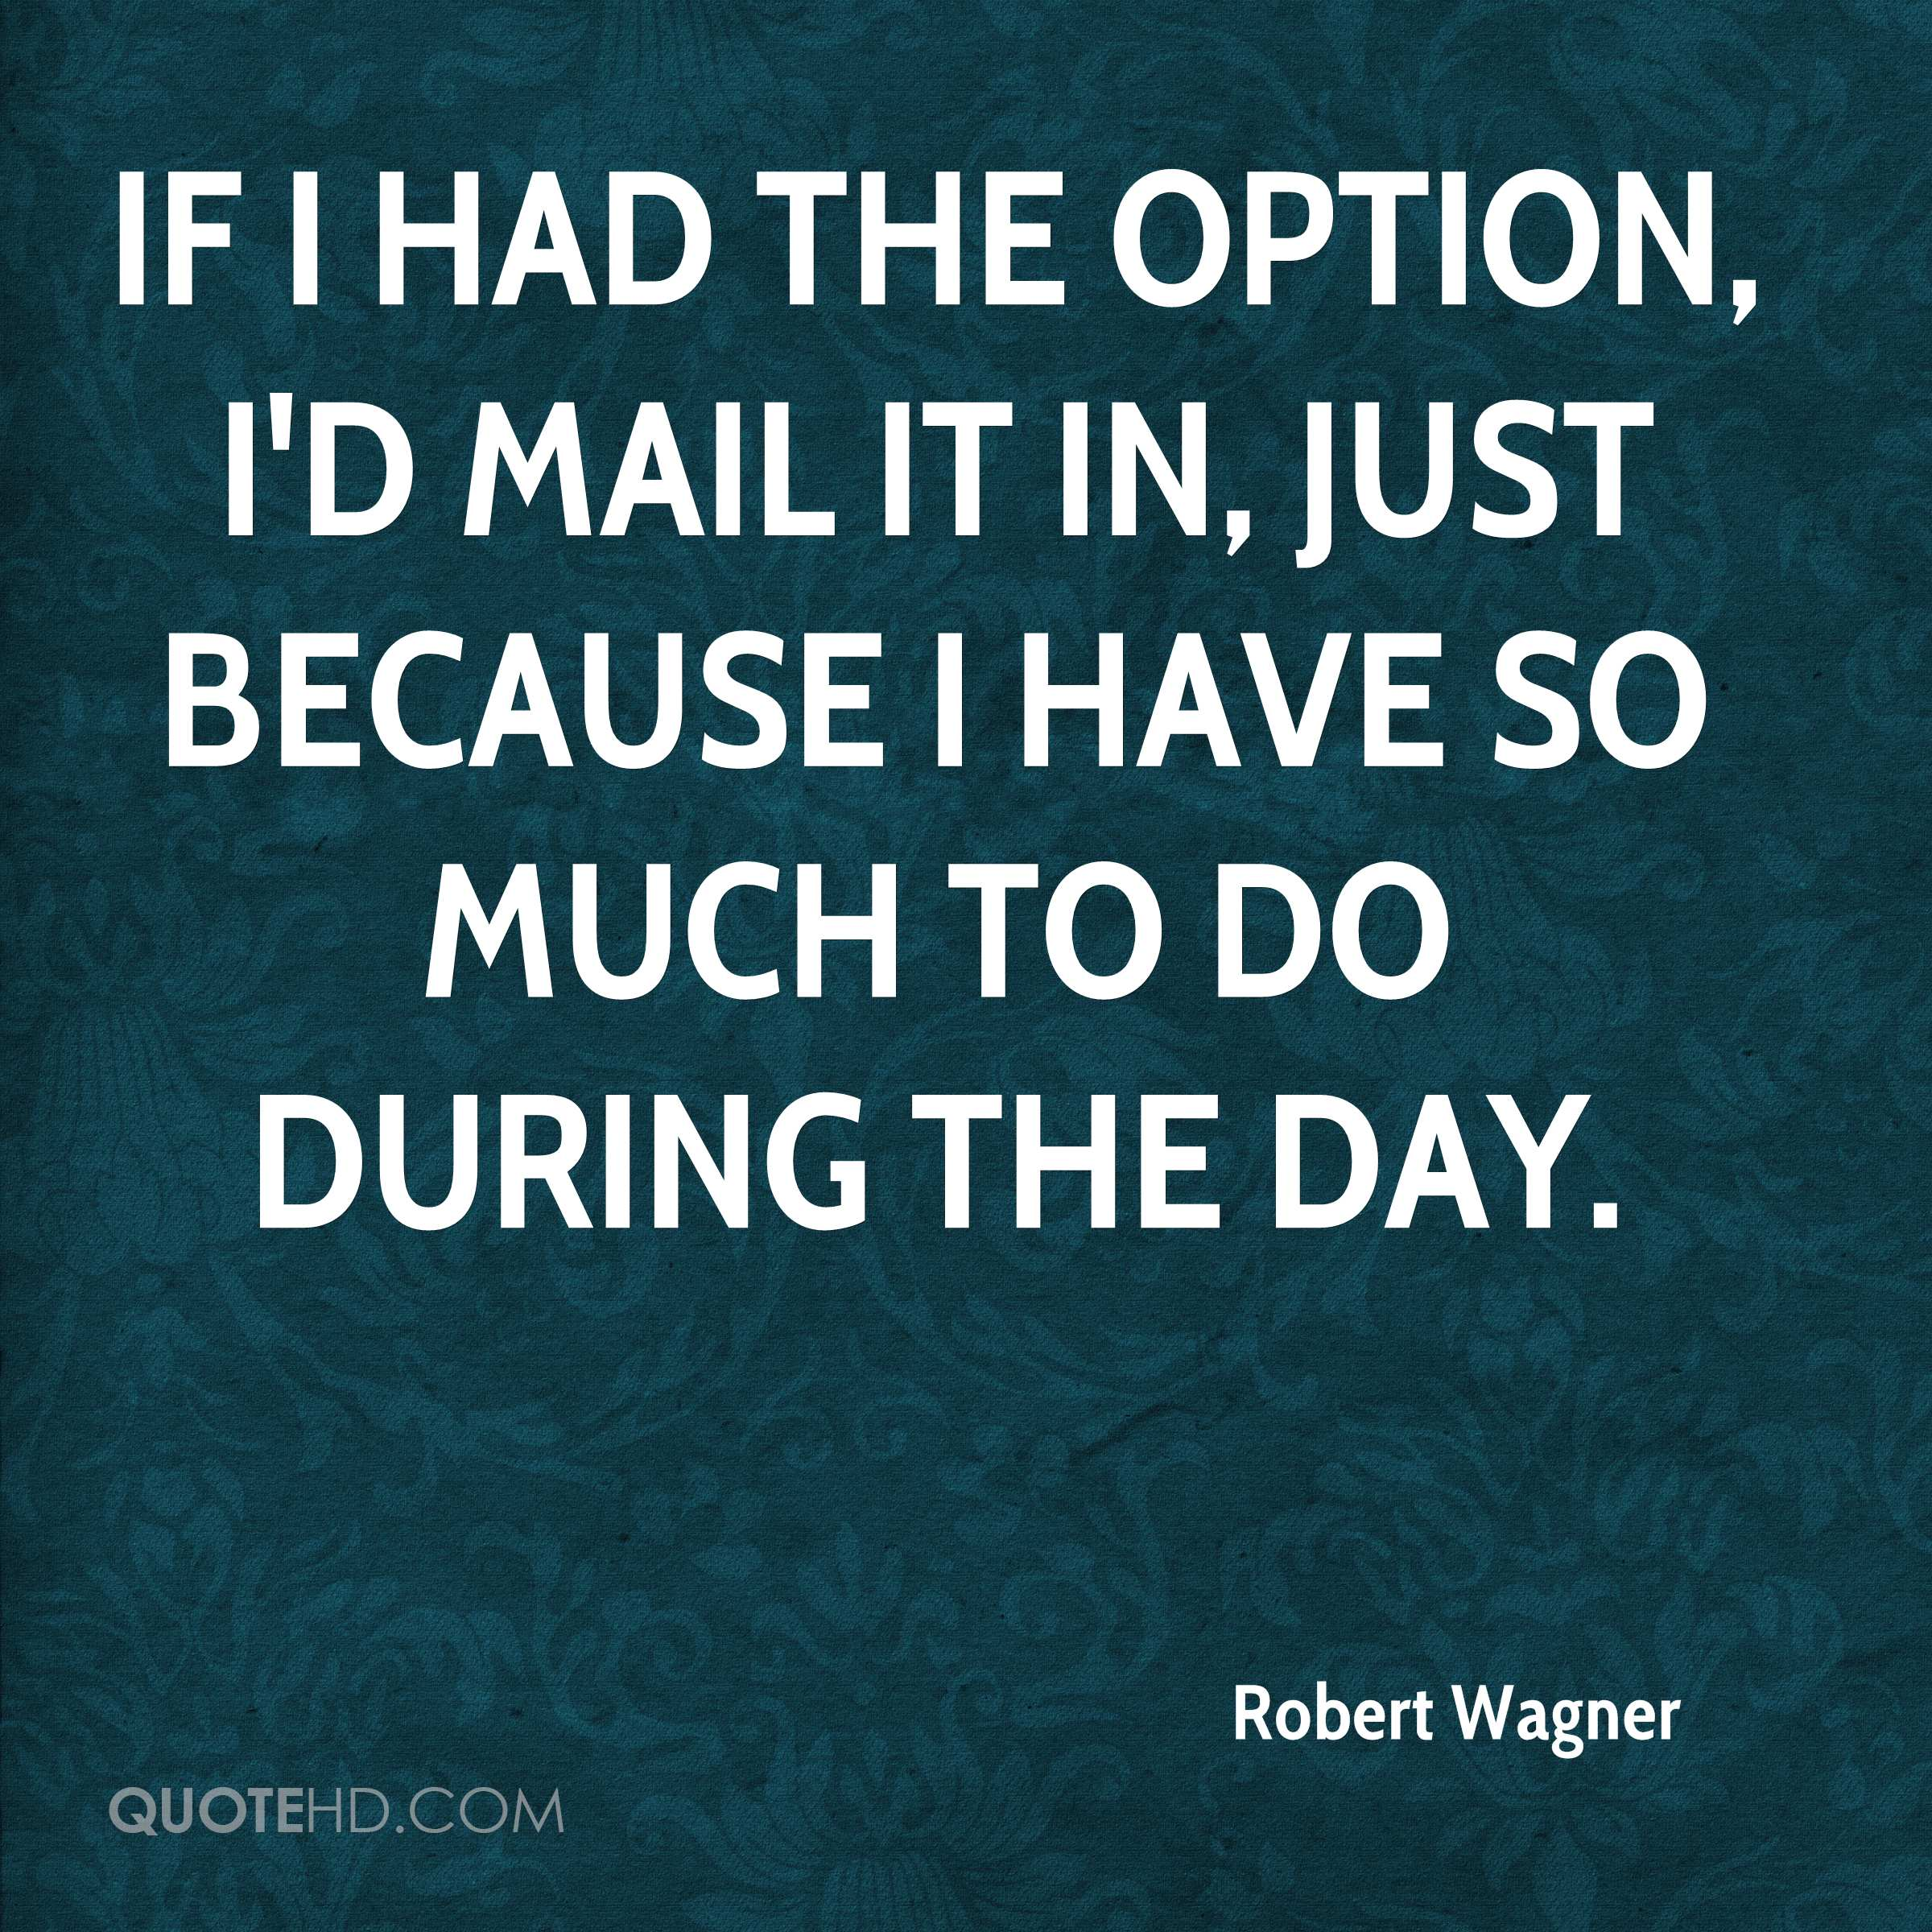 If I had the option, I'd mail it in, just because I have so much to do during the day.